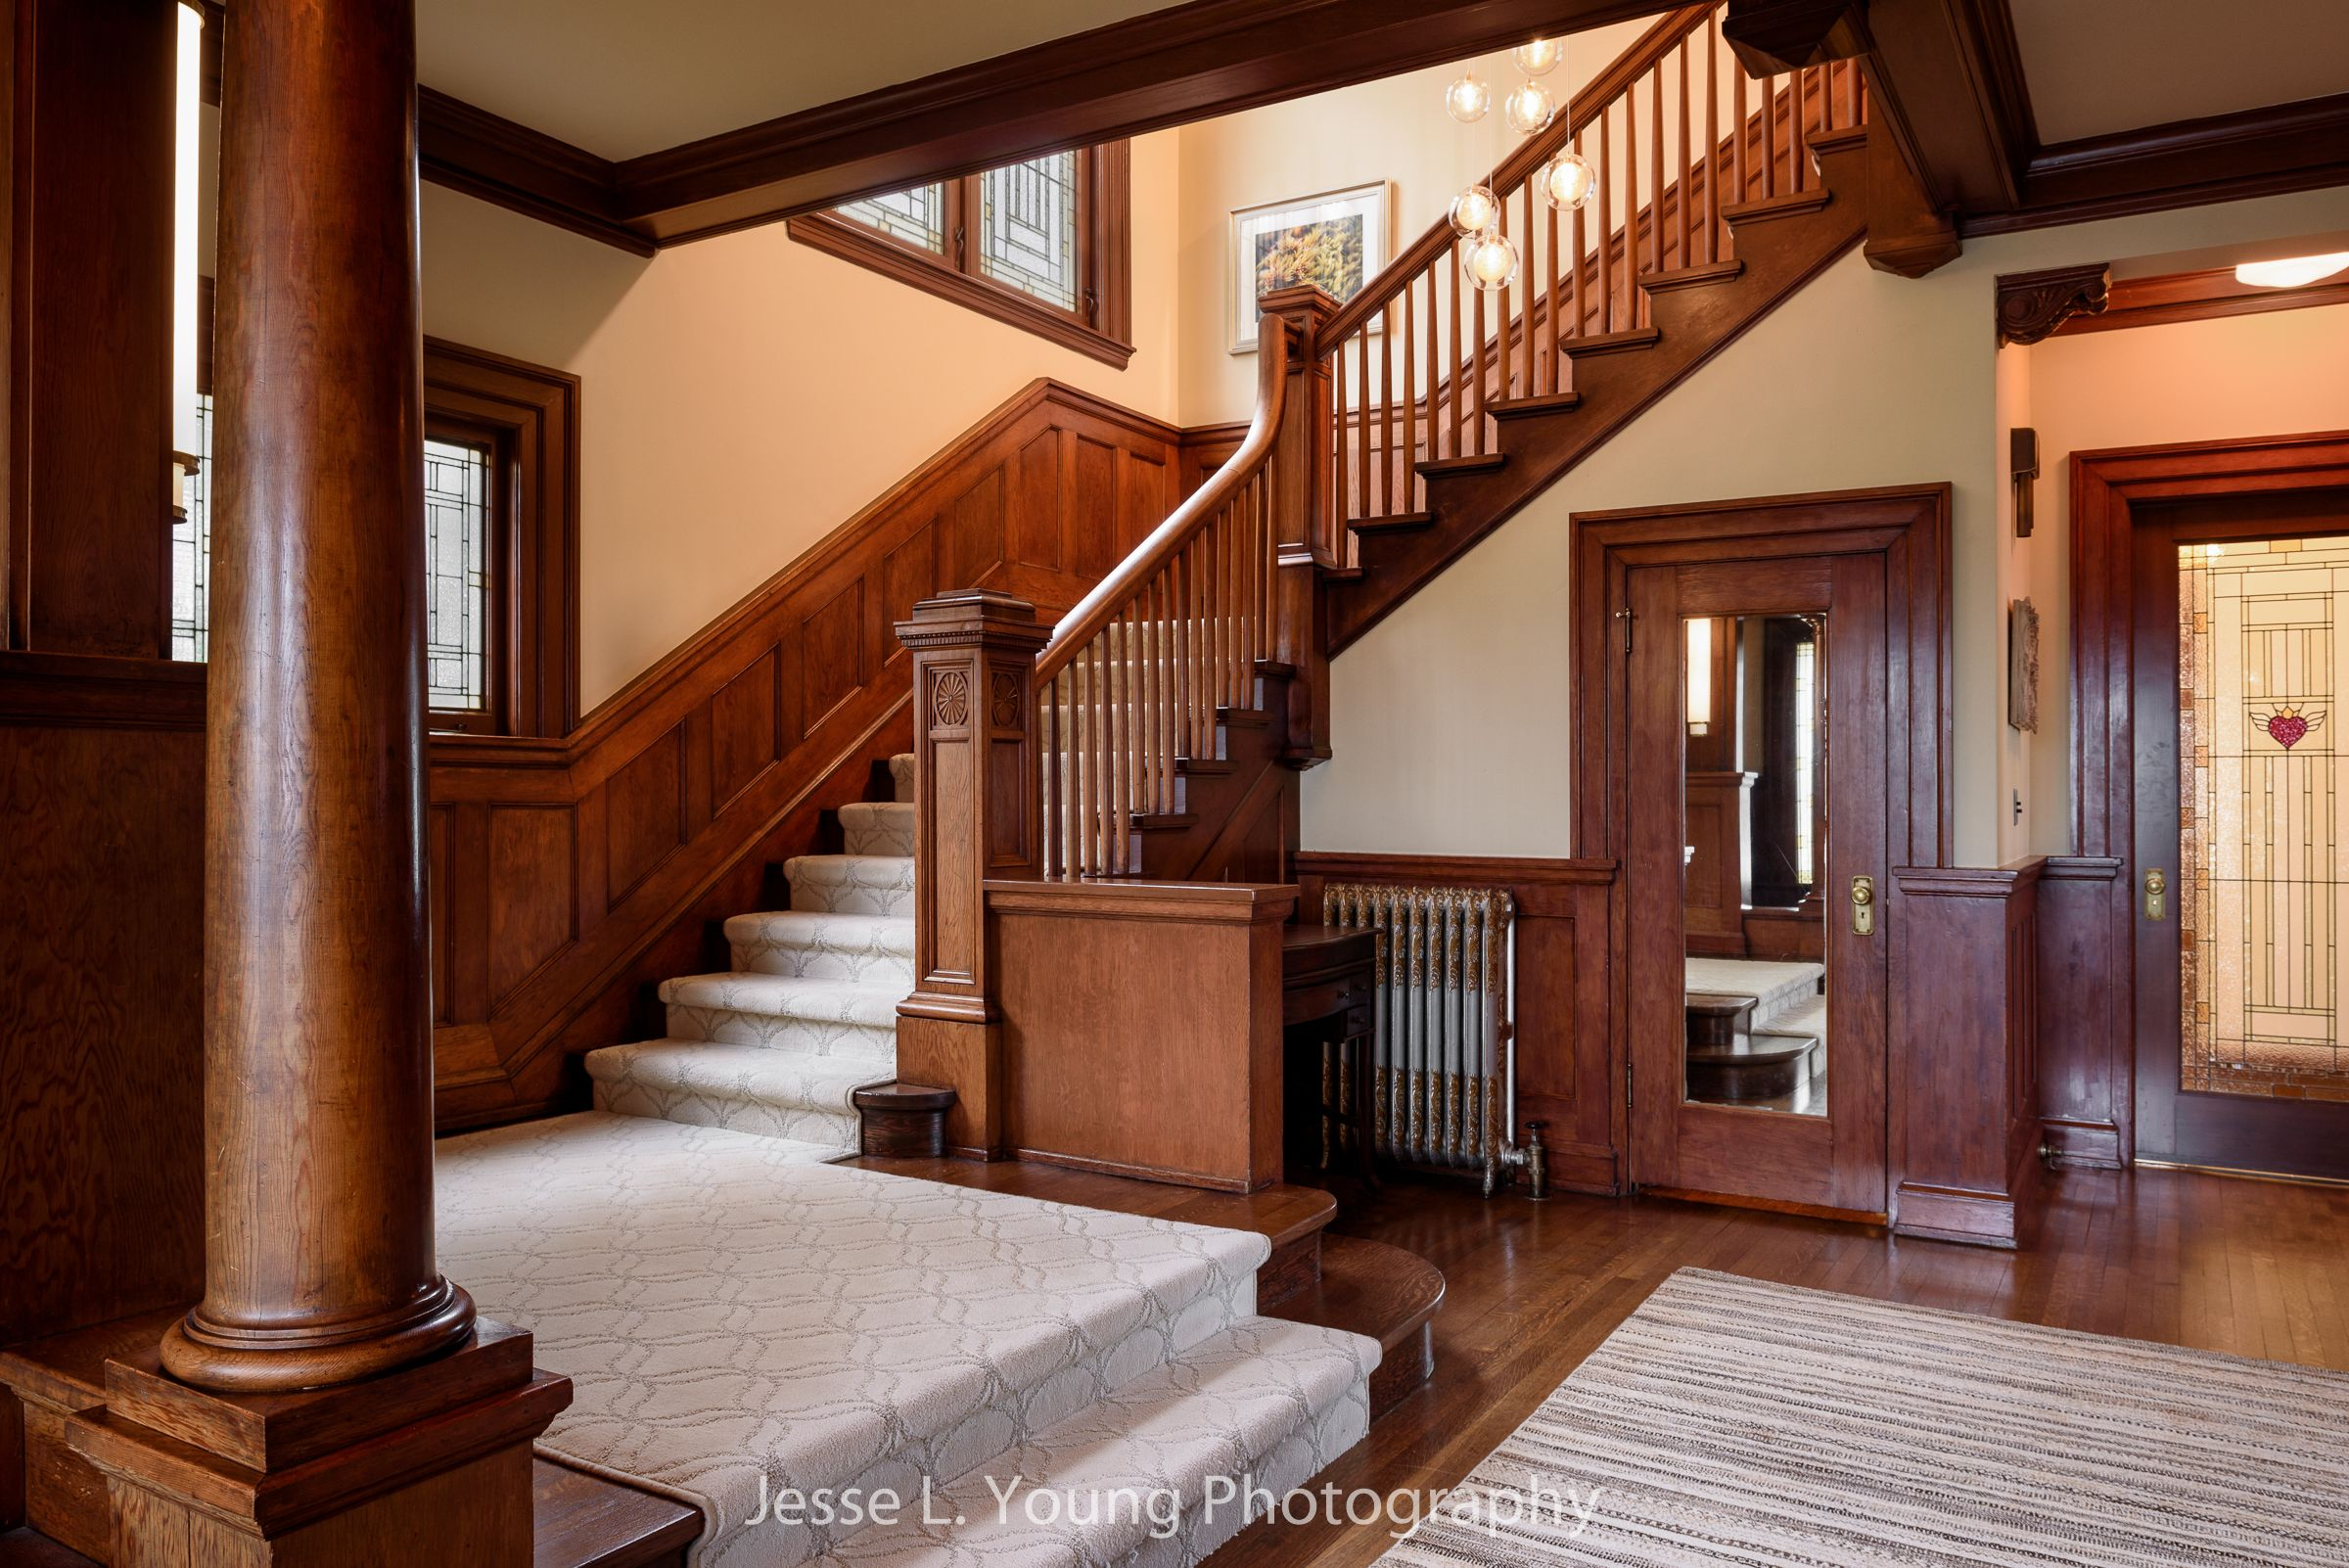 Seattle interior photographer. Capitol Hill